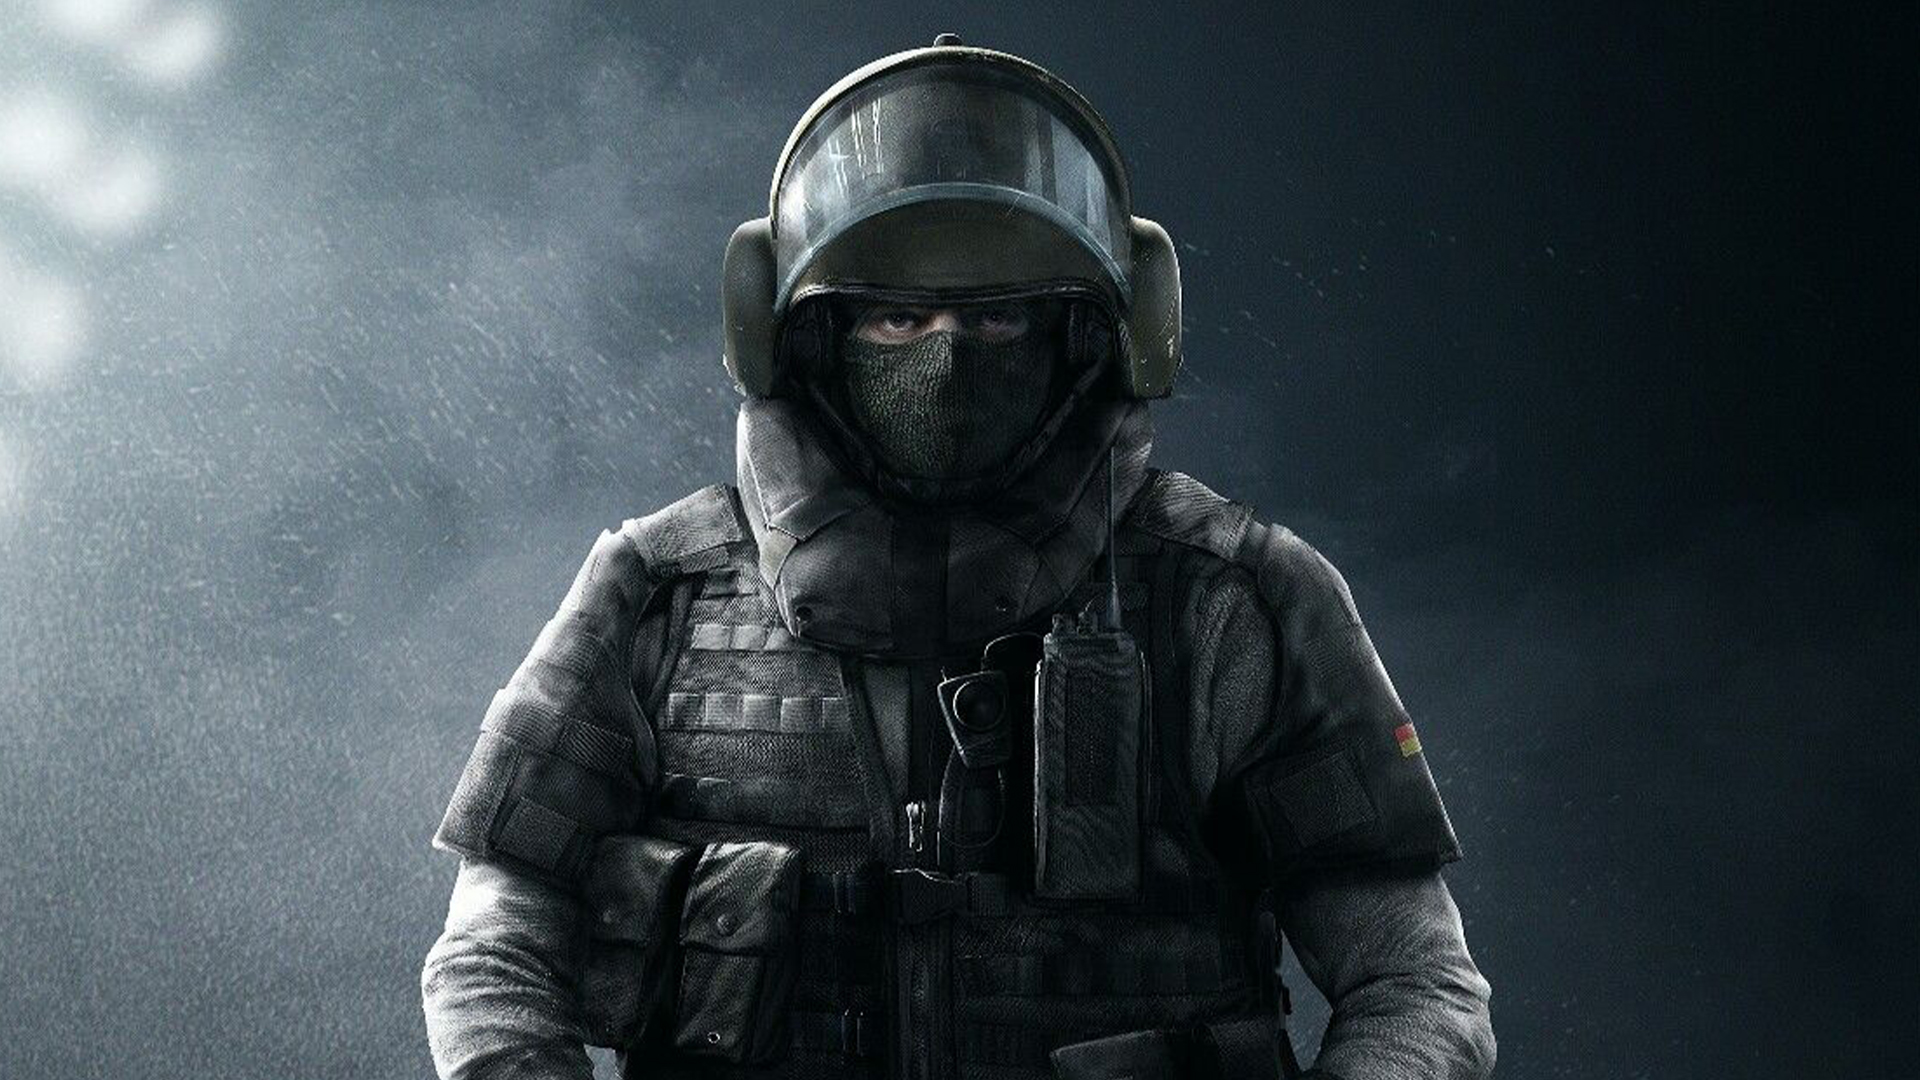 Rainbow Six Siege Year 5 pass leaked – with fewer new operators than usual